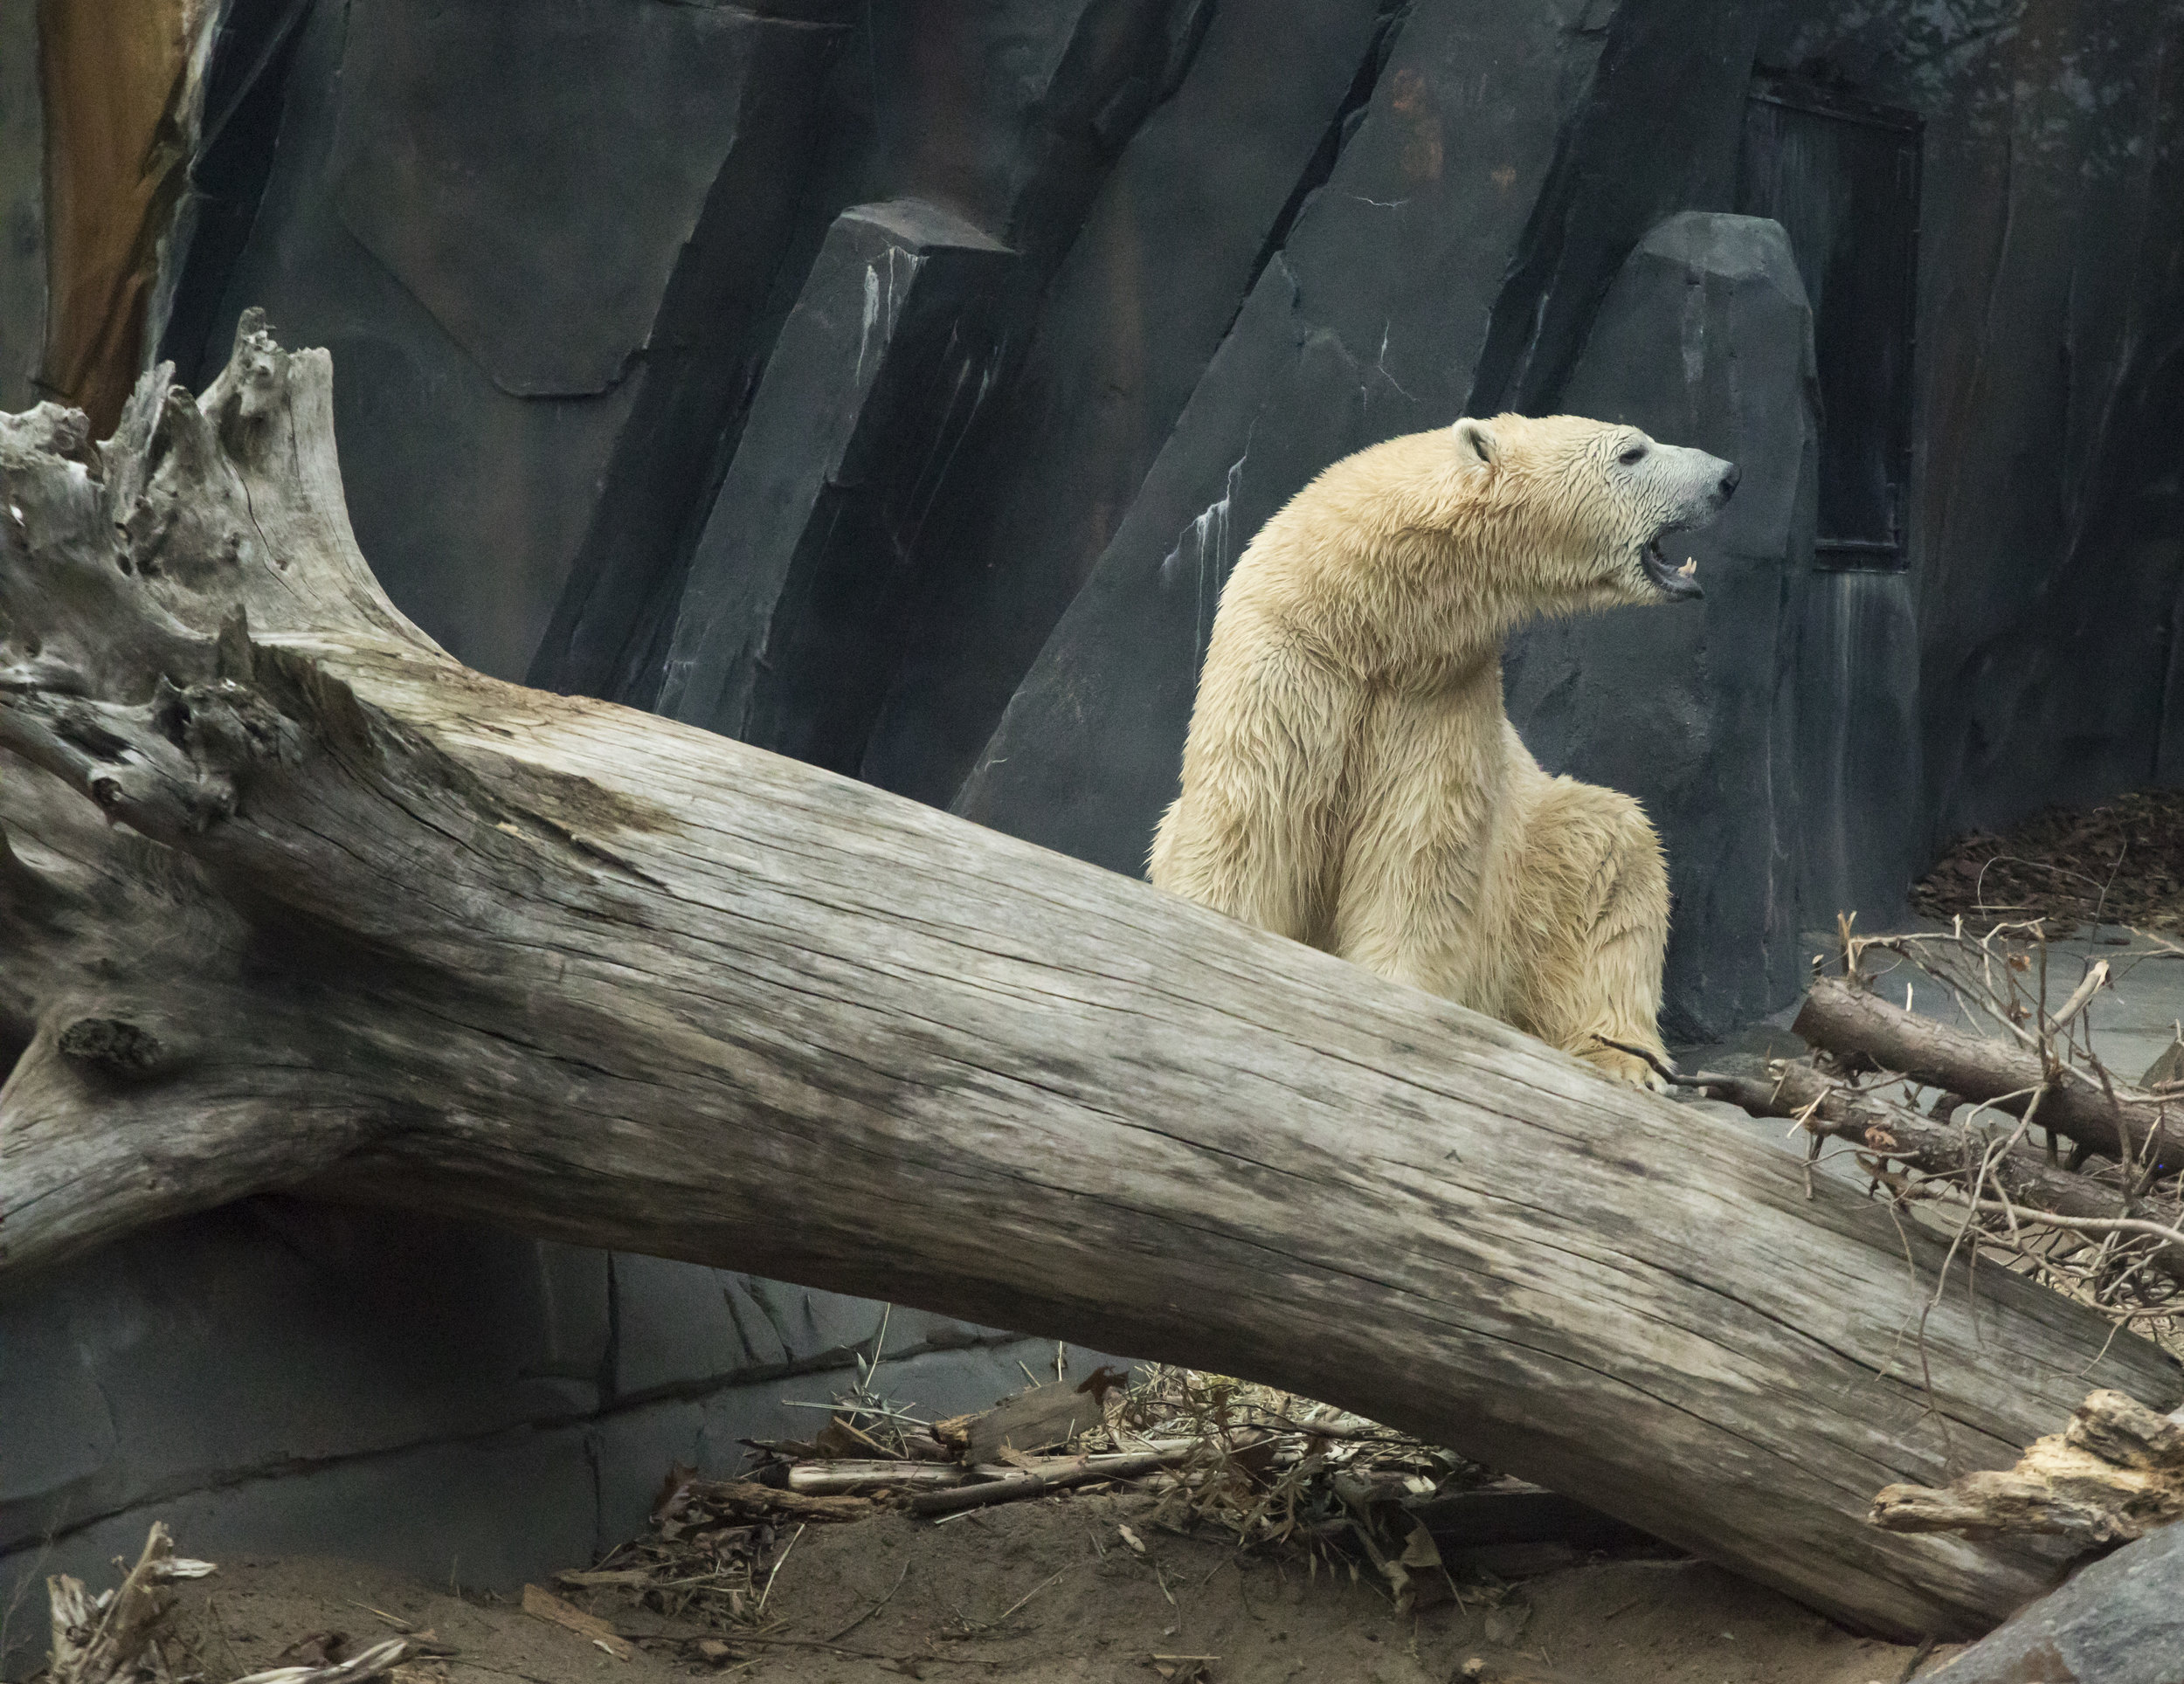 Saint_Louis_Zoo_Photographer_Polar_Bear.jpg